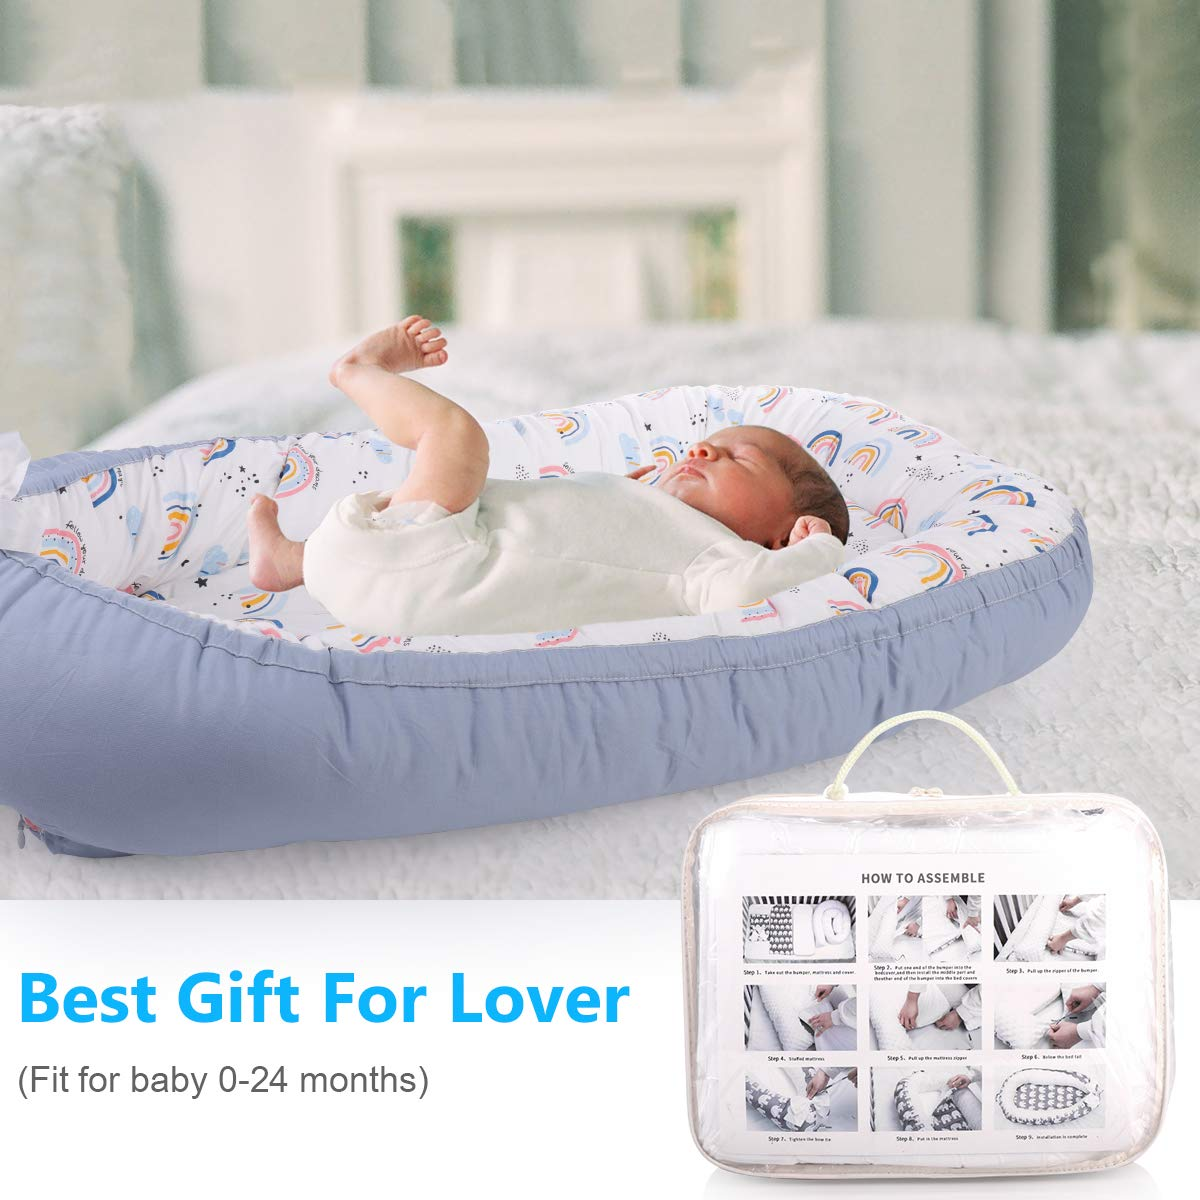 Portable Baby Crib with Mattresses Detachable Newborn Lounger for 0-24 Months Baby Super Soft Machine Washable Perfect for Travel /& Co-Sleeping Elephant /& Grey Baby Nest